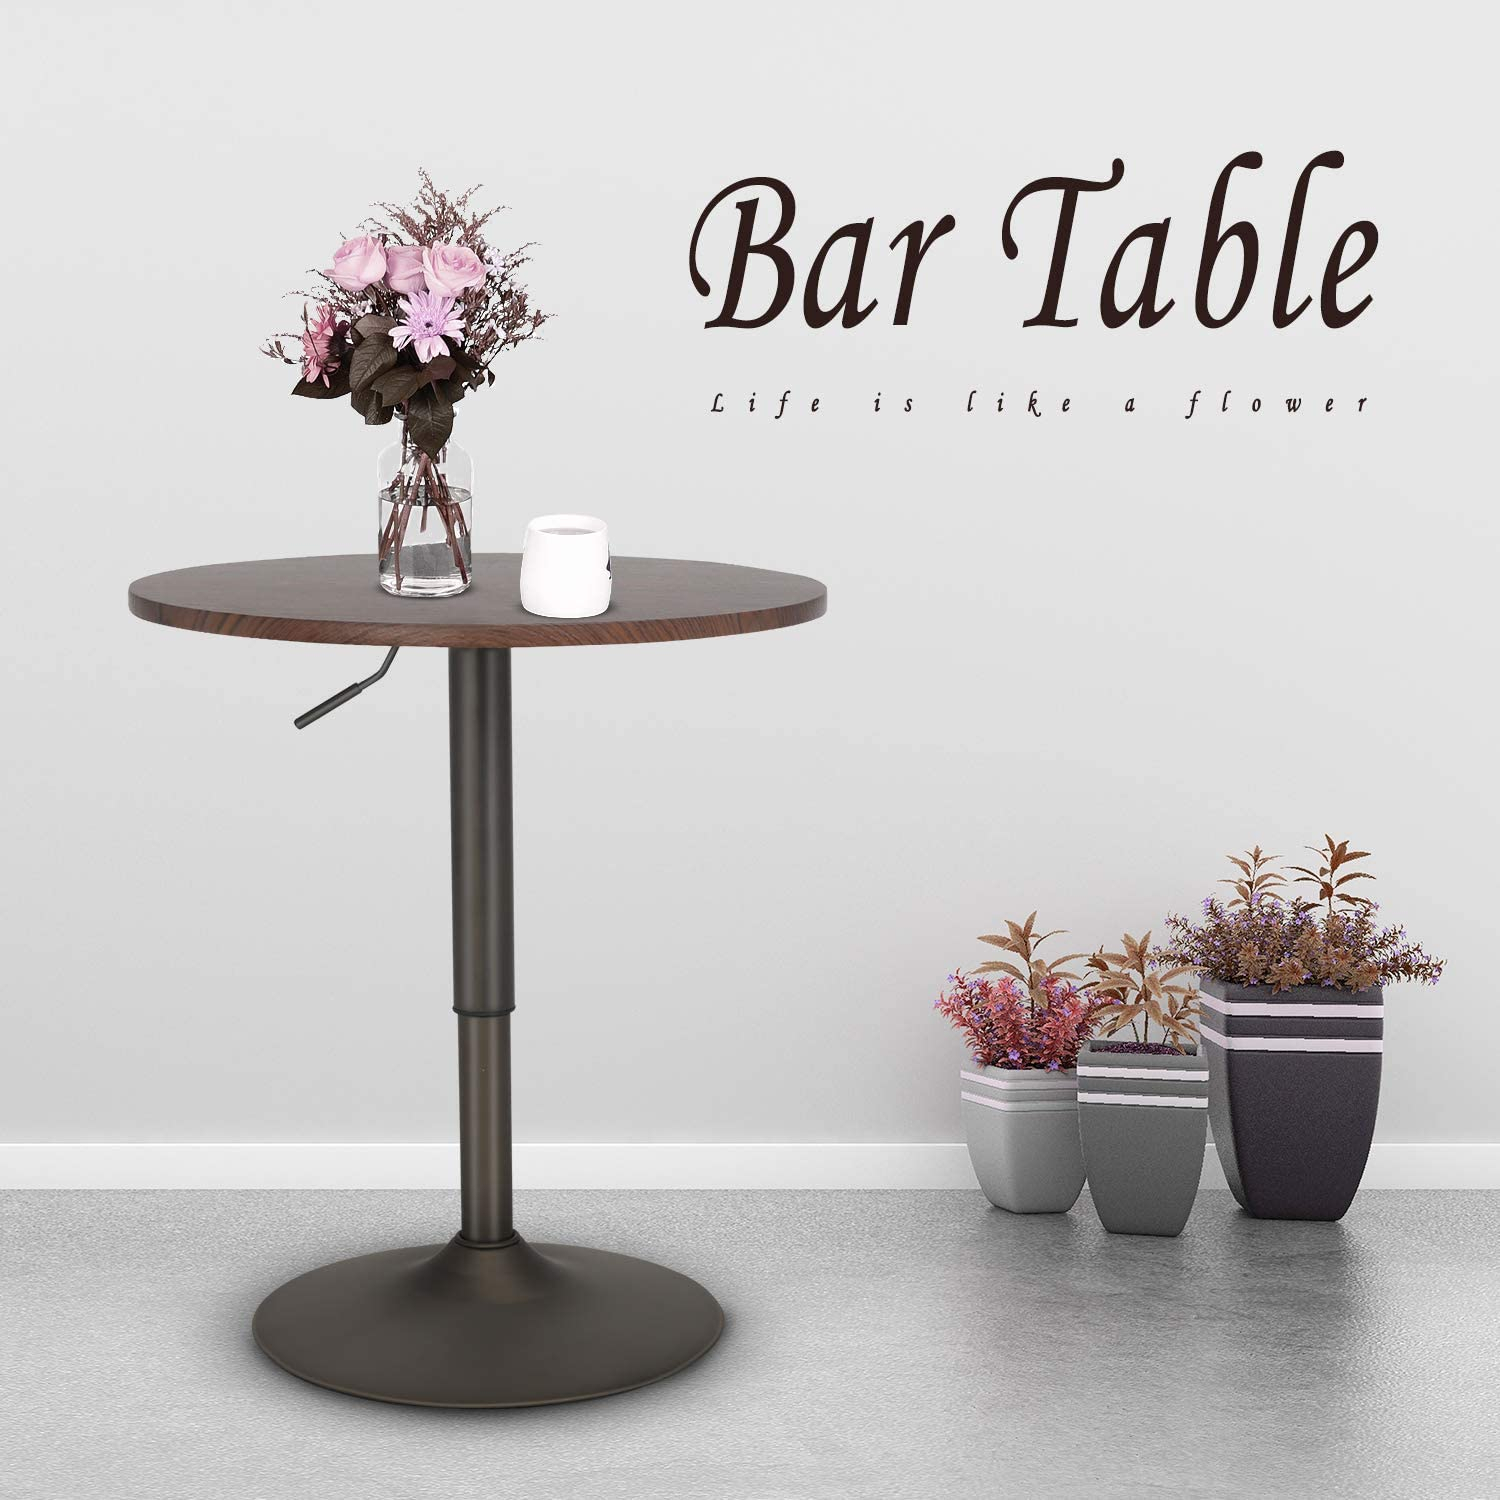 Elecwish 24 Inches Round Bar Table Adjustable Height And Inside 2017 3 Games Convertible 80 Inches Multi Game Tables (View 13 of 15)